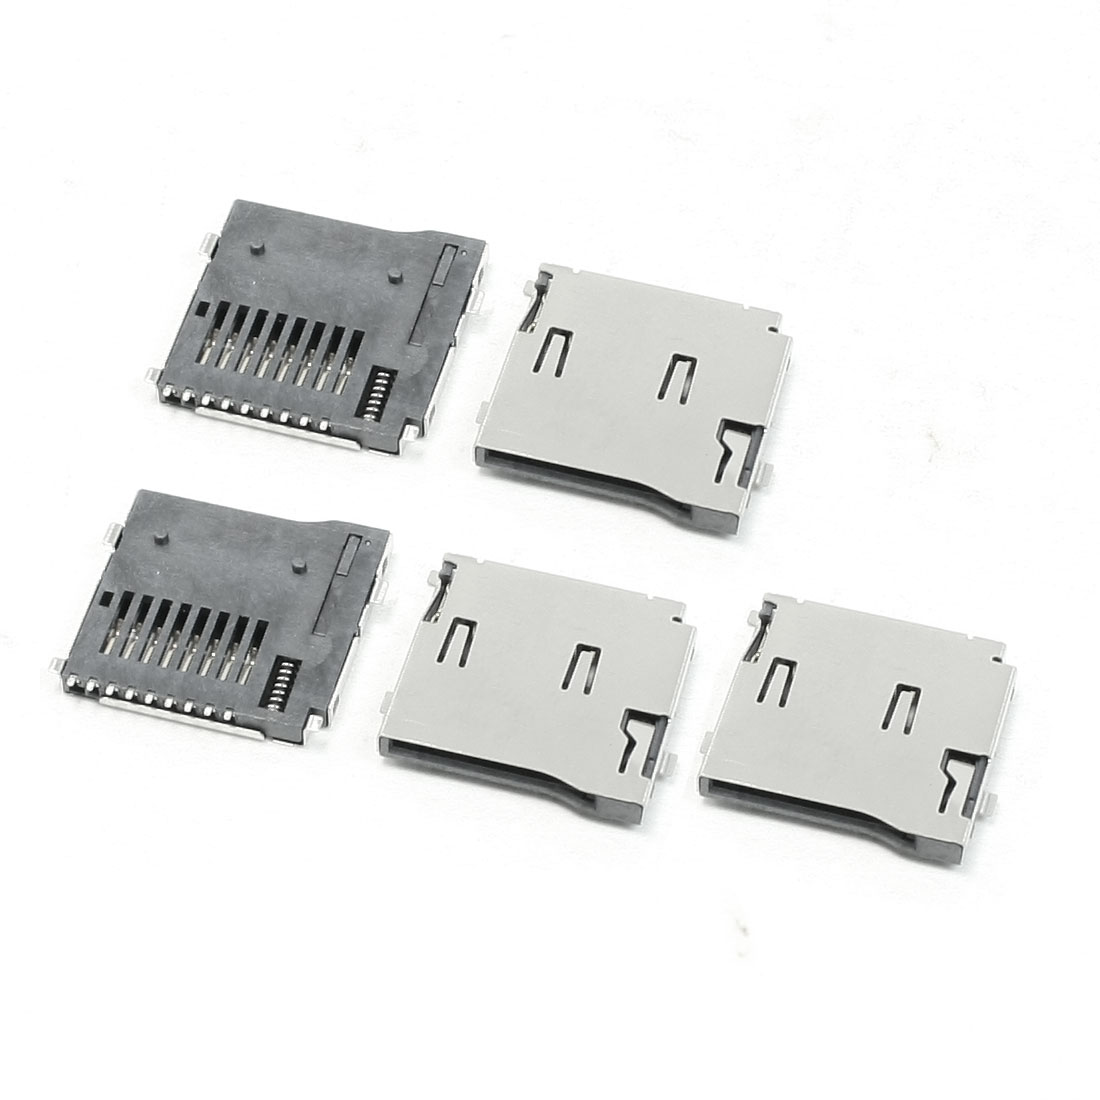 PCB Mount Push-in Push-out Type TF Micro SD Card Sockets 5 Pcs for Cell Phone